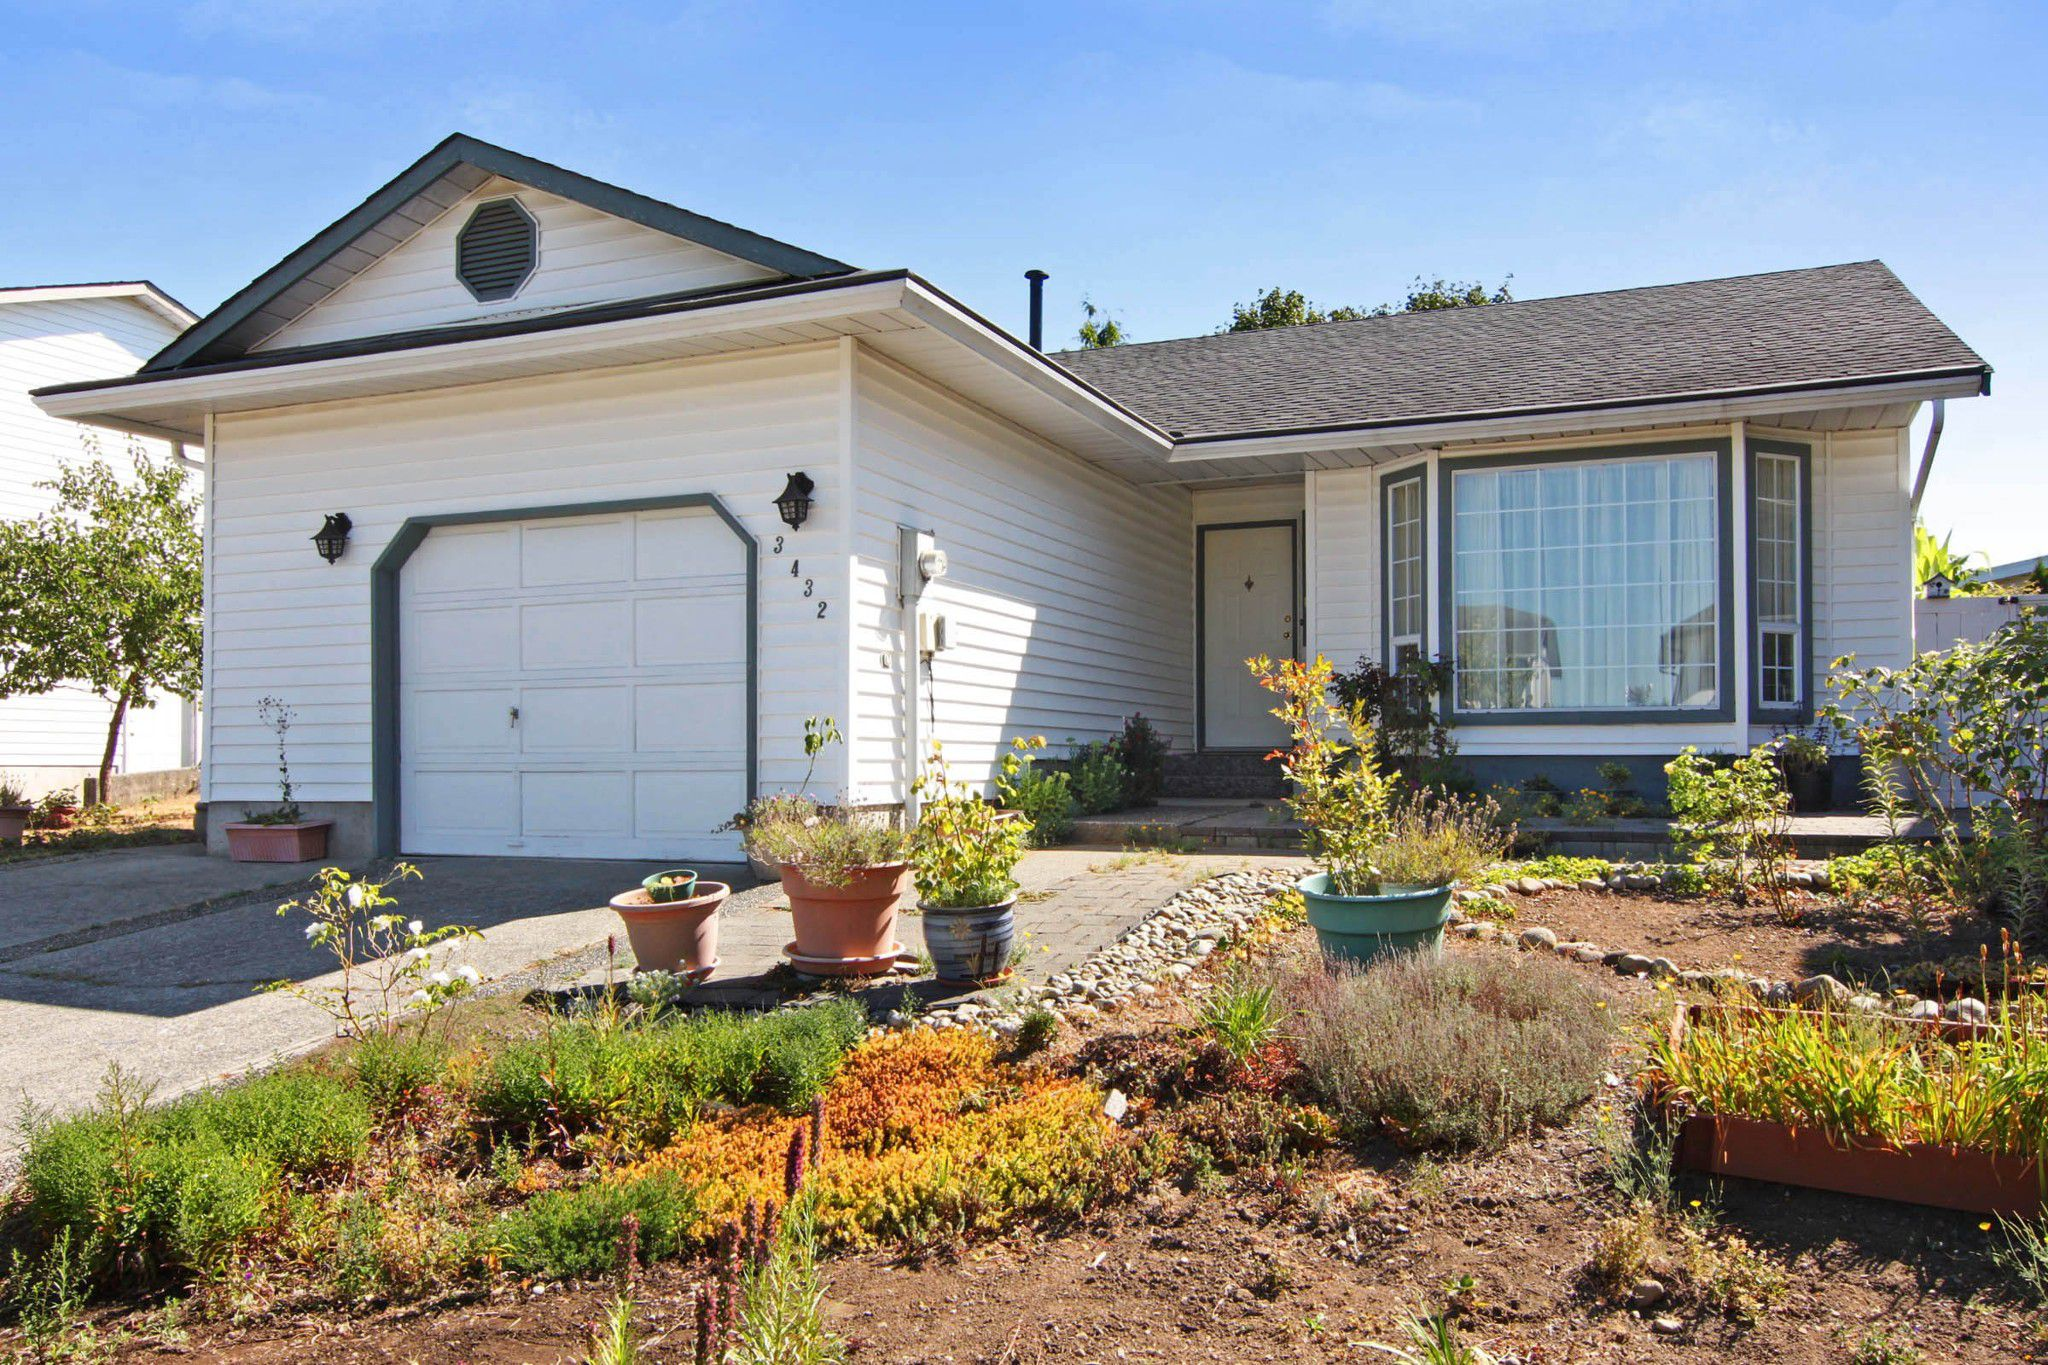 Main Photo: 3432 OKANAGAN Drive in Abbotsford: Abbotsford West House for sale : MLS®# R2294933